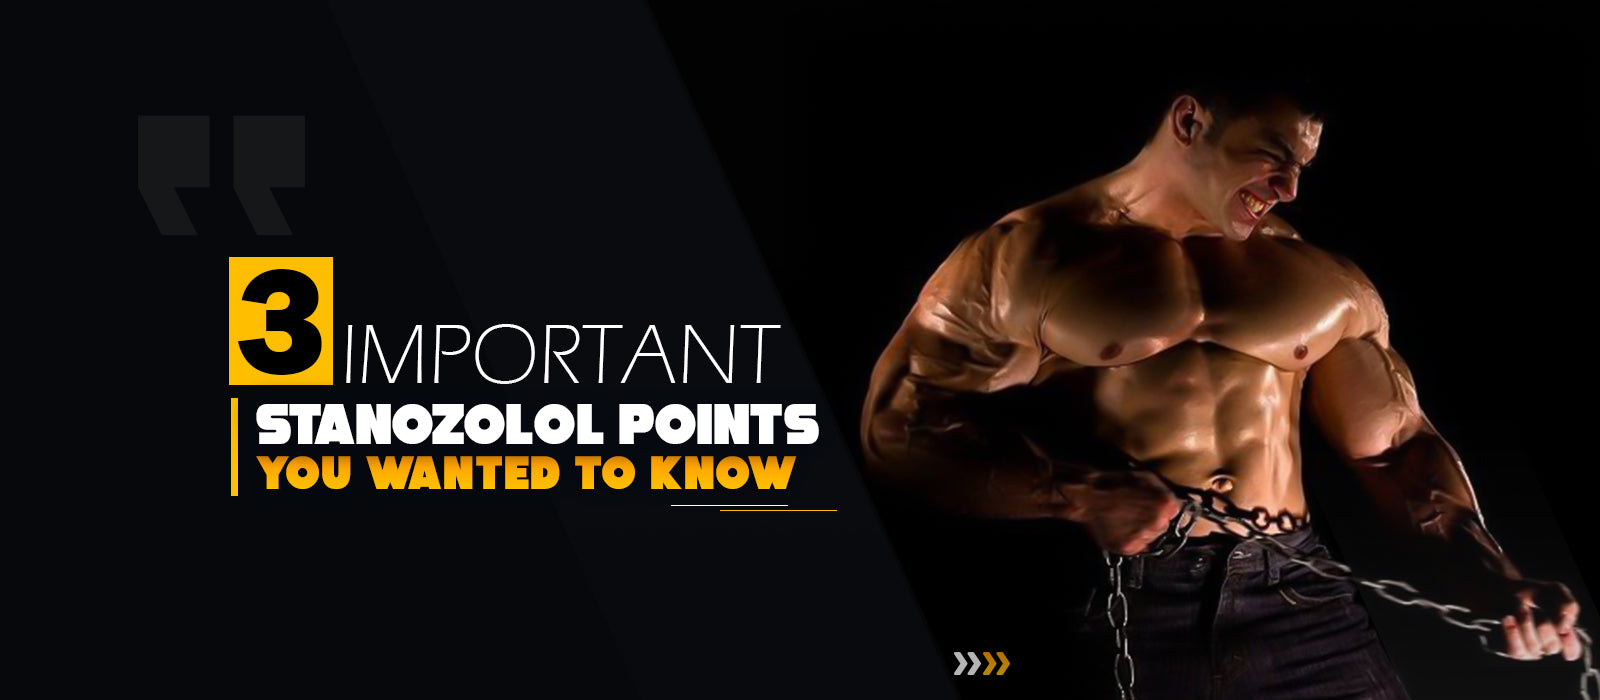 3 Important Stanozolol Points You Wanted To Know